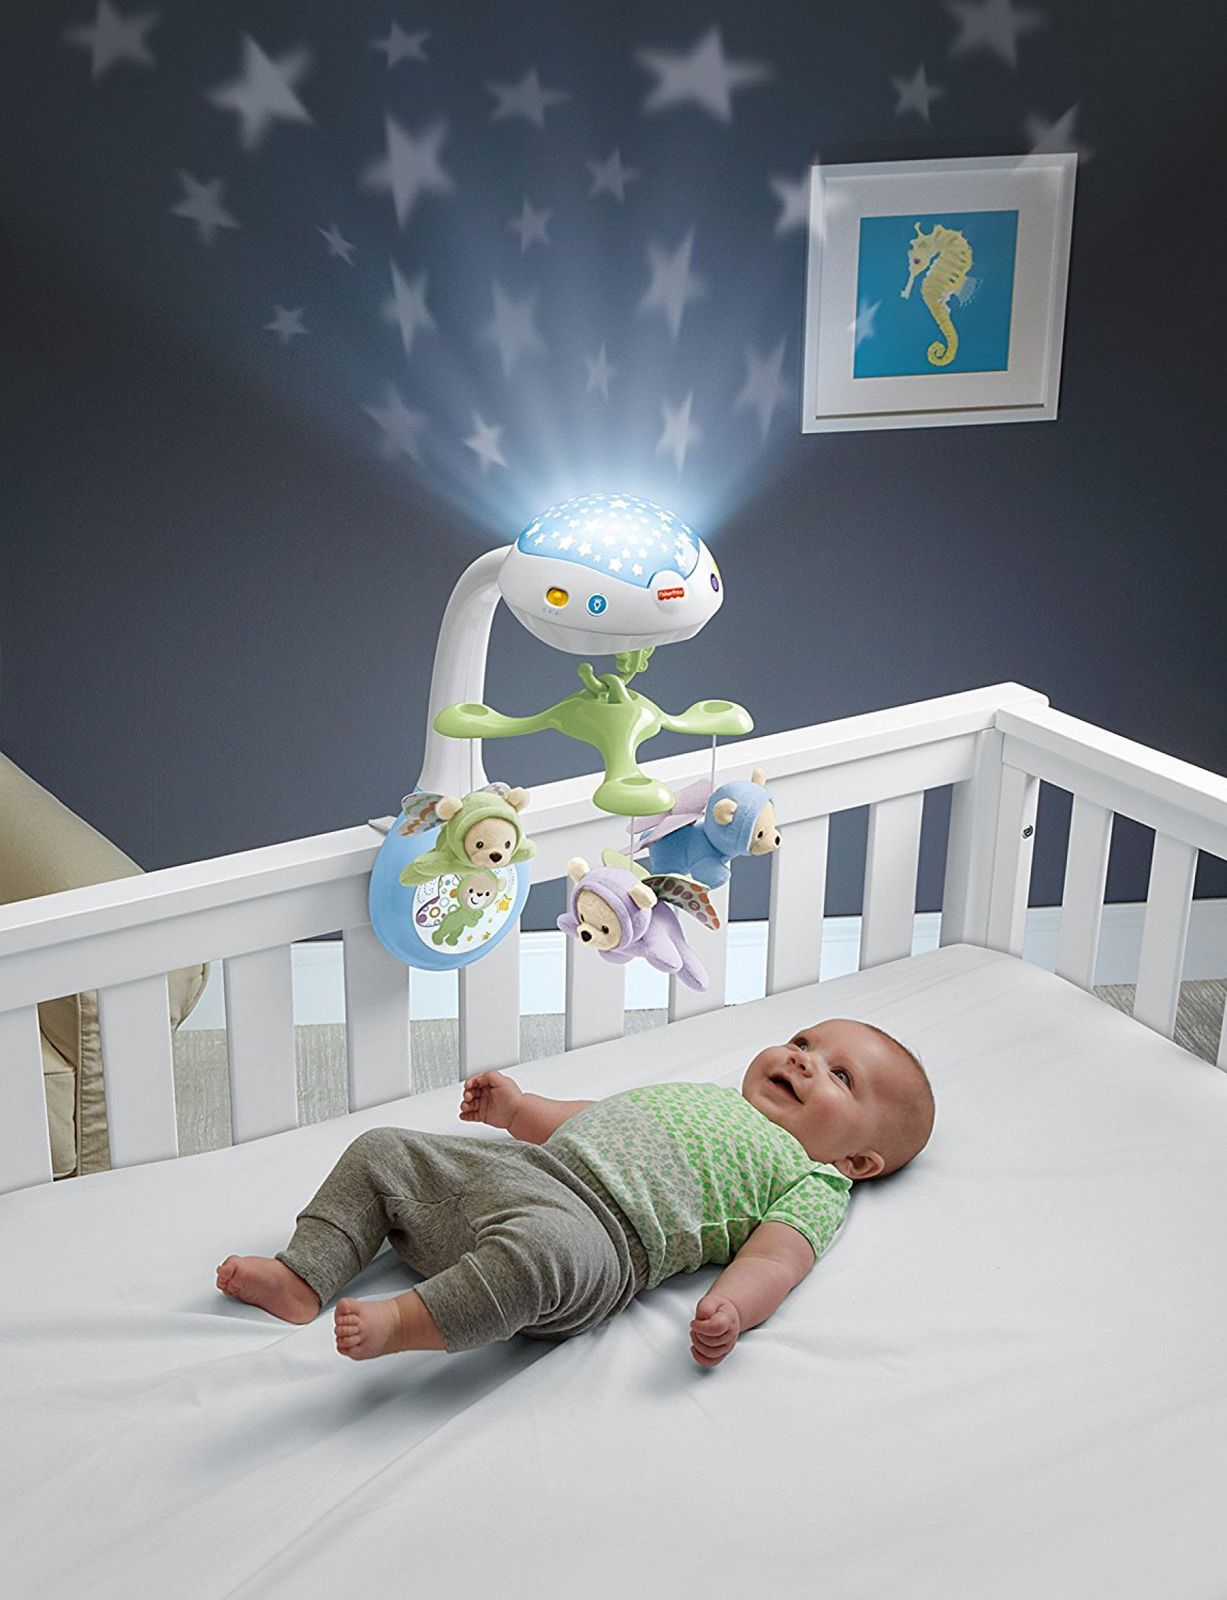 Fisher Price Butterfly Dreams 3 In 1 Projection Mobile Musical Crib